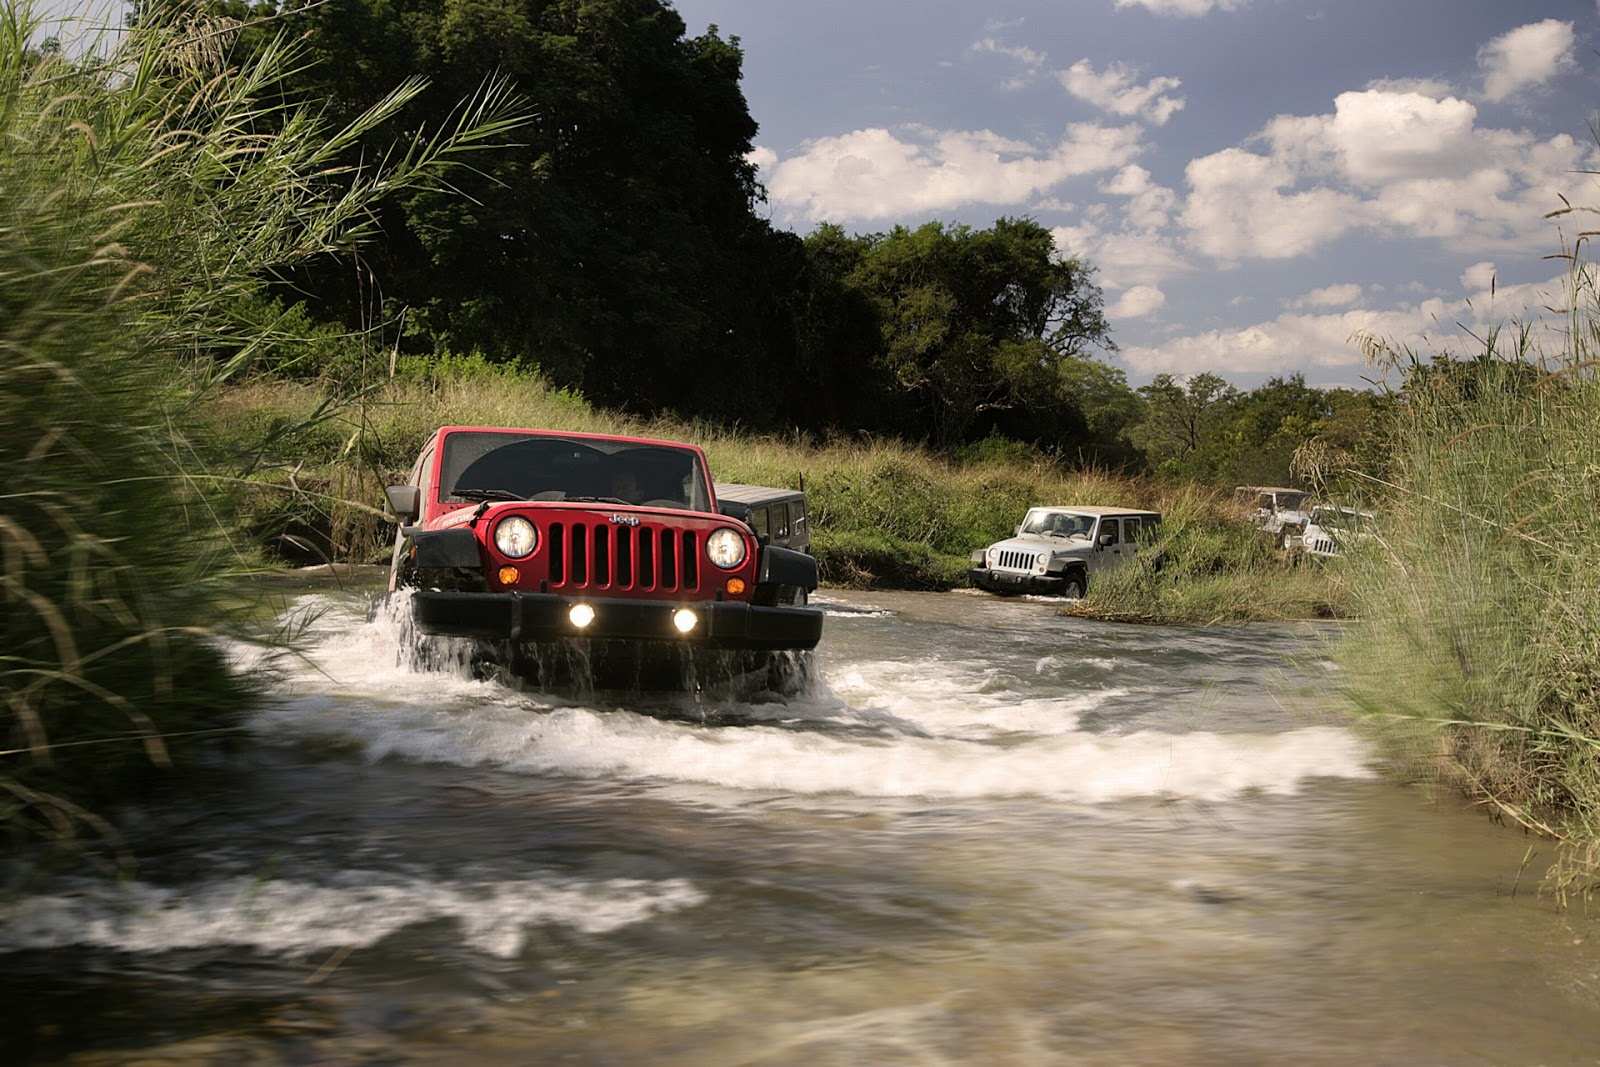 Jeep Wrangler Wallpaper cool jeep 4x4 pictures jeep images 1600x1067